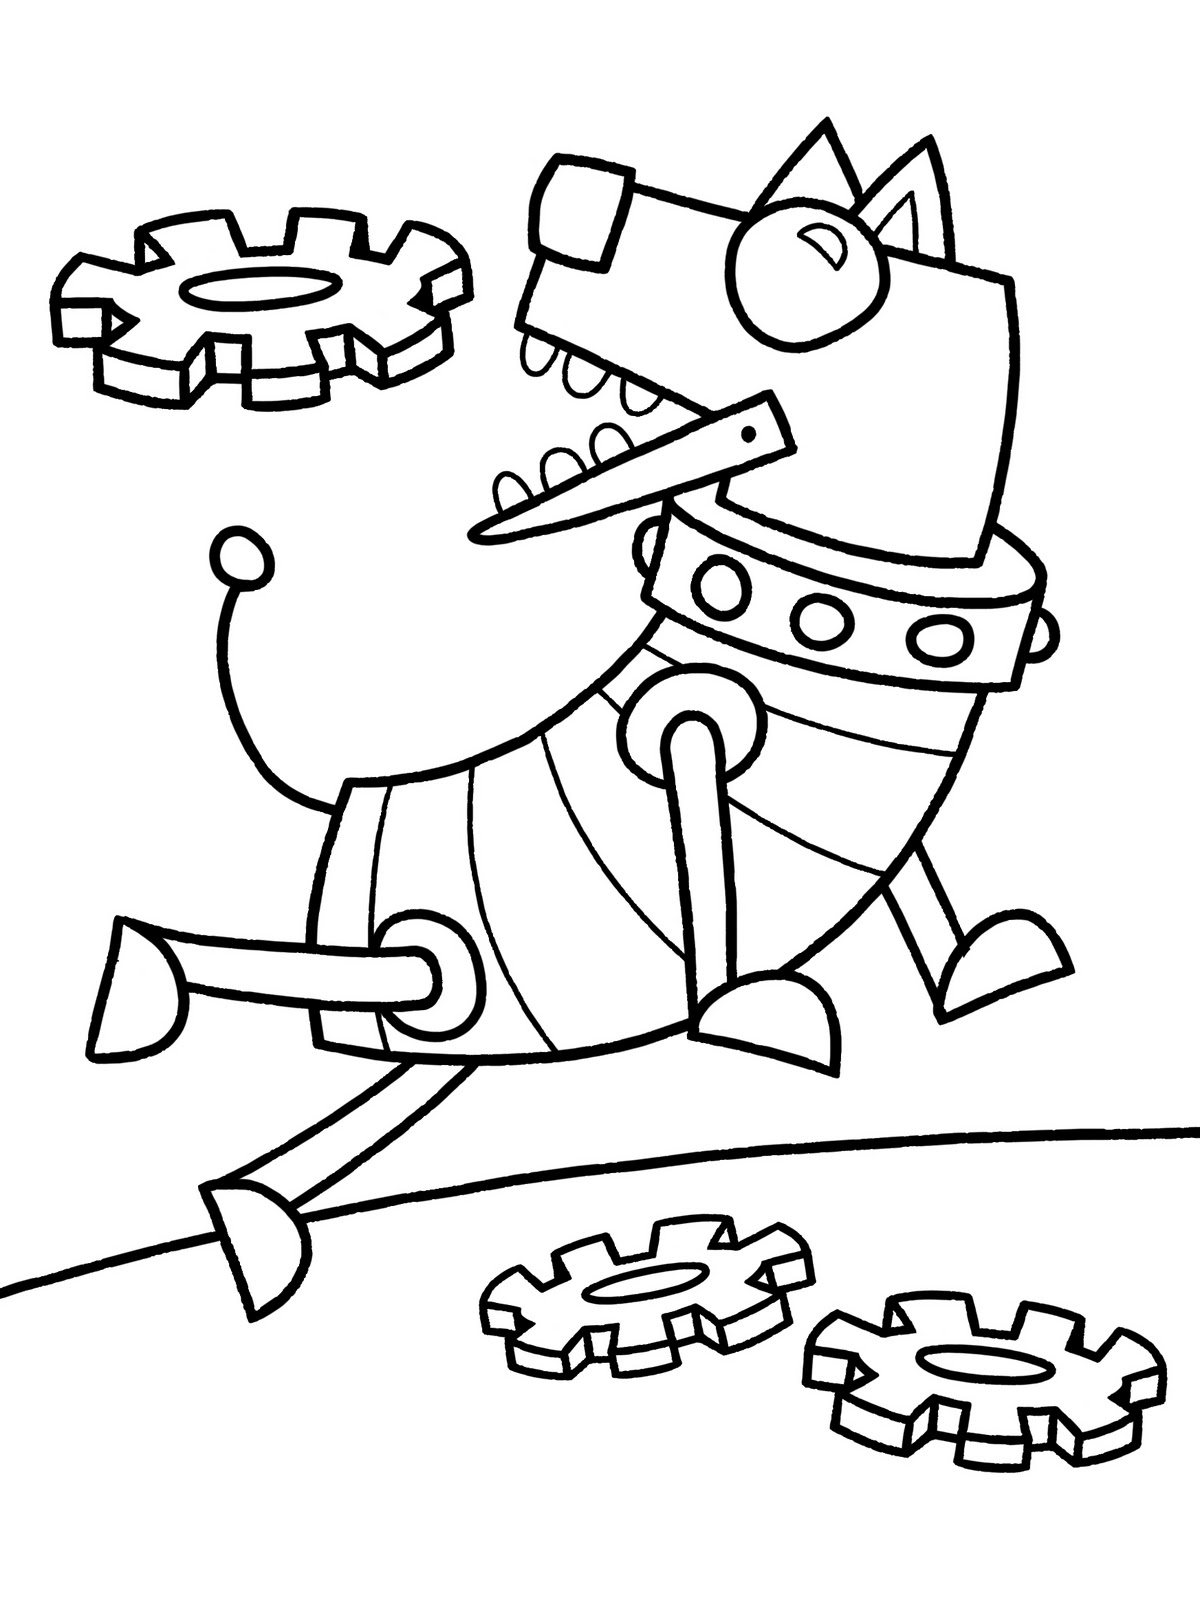 Paw patrol coloring pages robo dog - Little Robots Coloring Pages